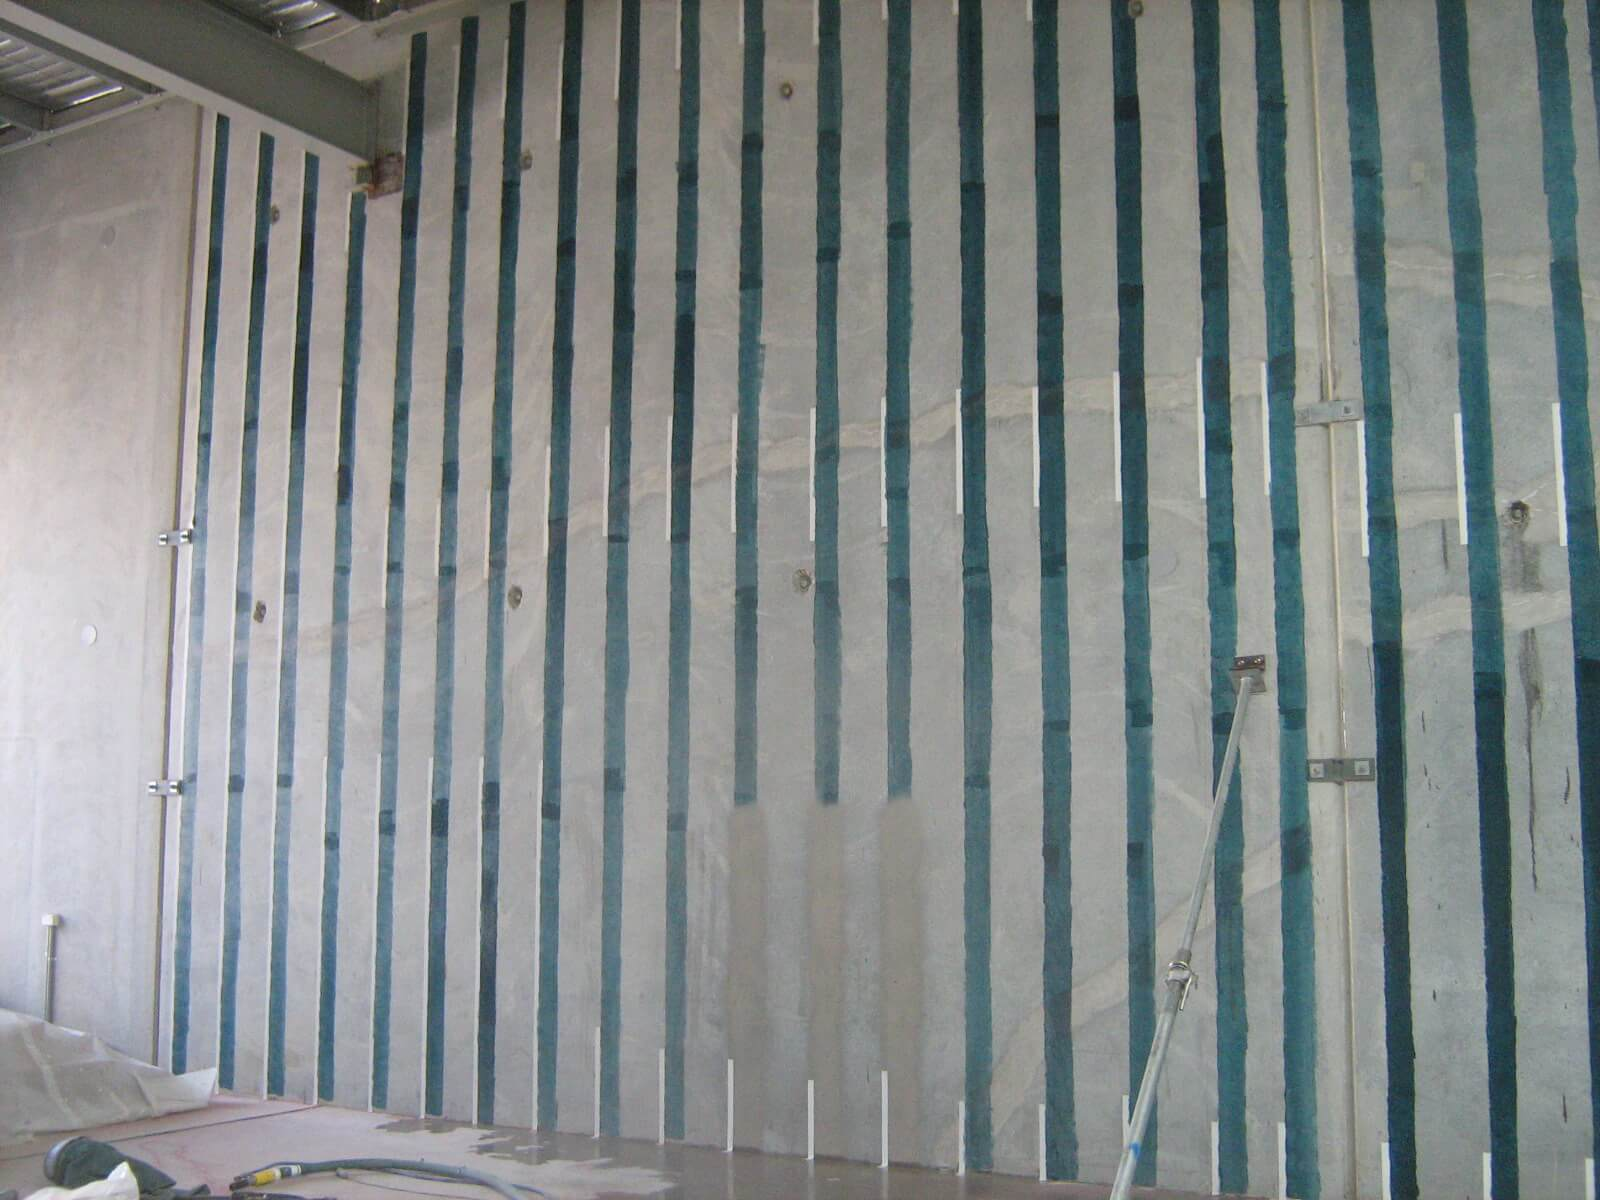 Carbon Fibre Strips To Wall - Structural Building Repair - Remedial Building Services